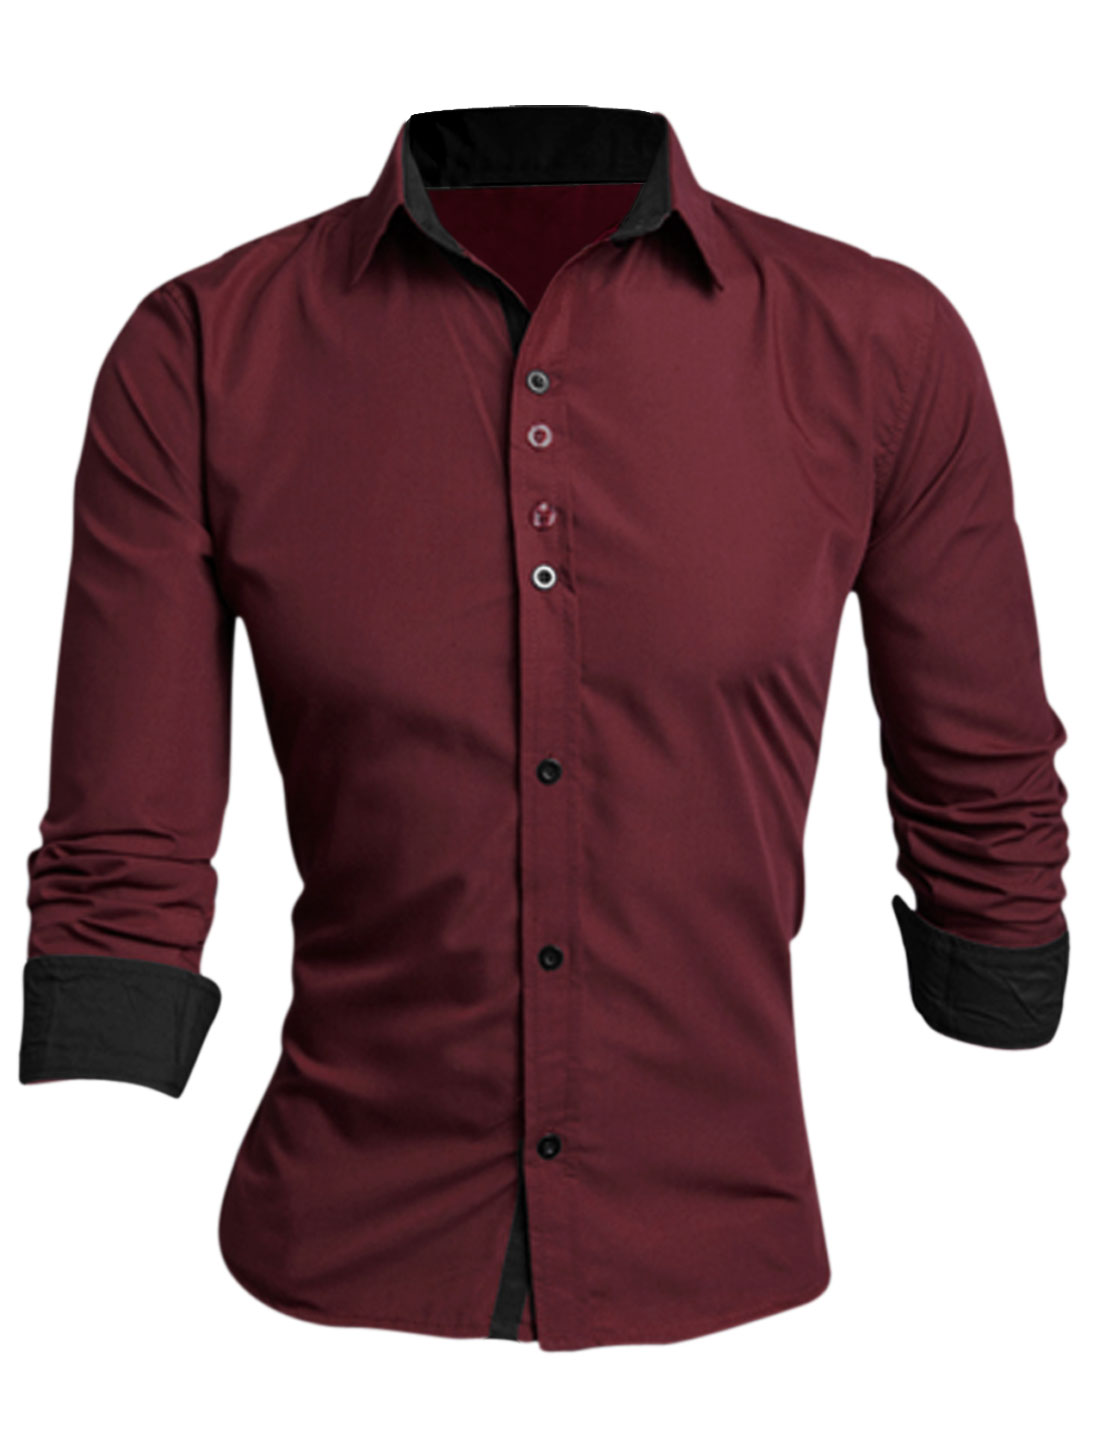 Man Burgundy Long Sleeves Single Breasted Slim Fit Casual Shirt M